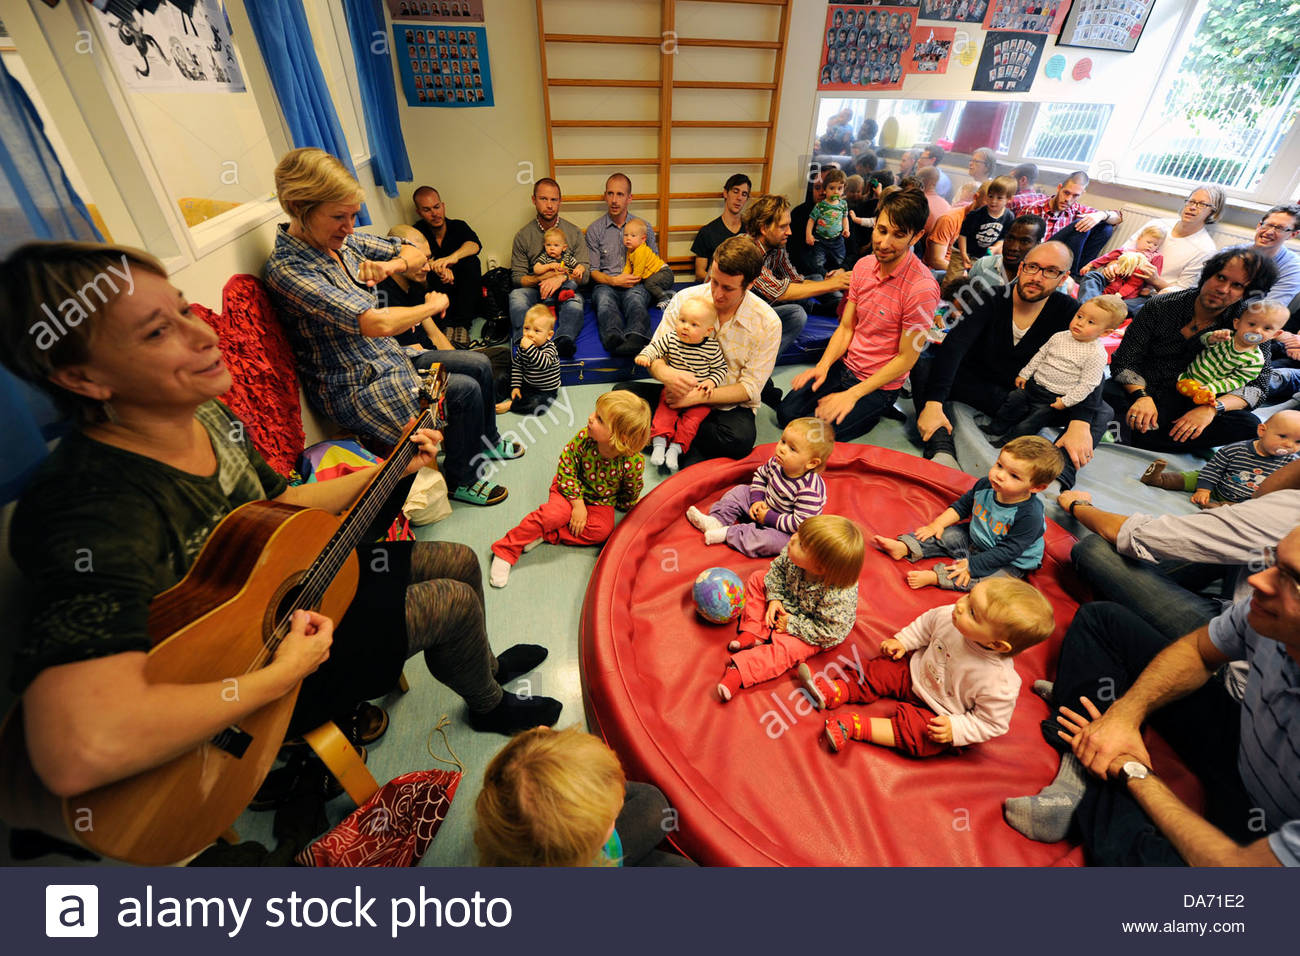 day nursery exclusively dedicated to dads in paternal leave house family in neighborhood mollevang in malmo sweden - Stock Image